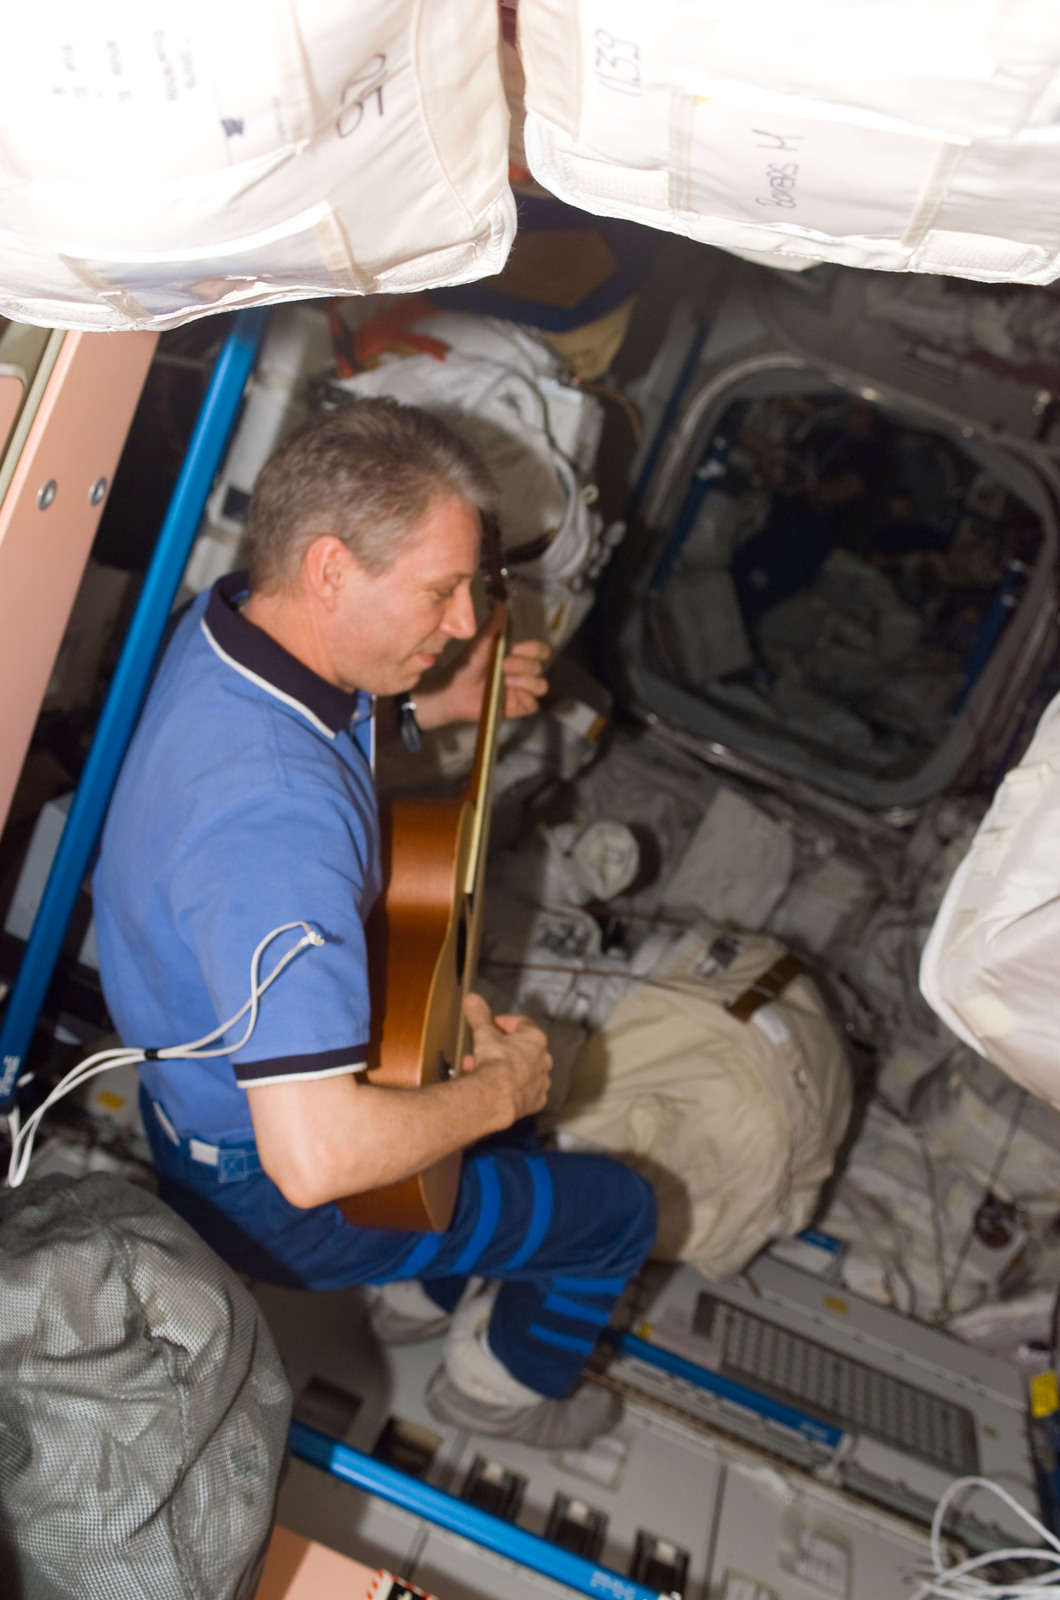 S116E06541 - STS-116 - STS-116 FE Reiter plays guitar in the Node 1 during Joint Operations